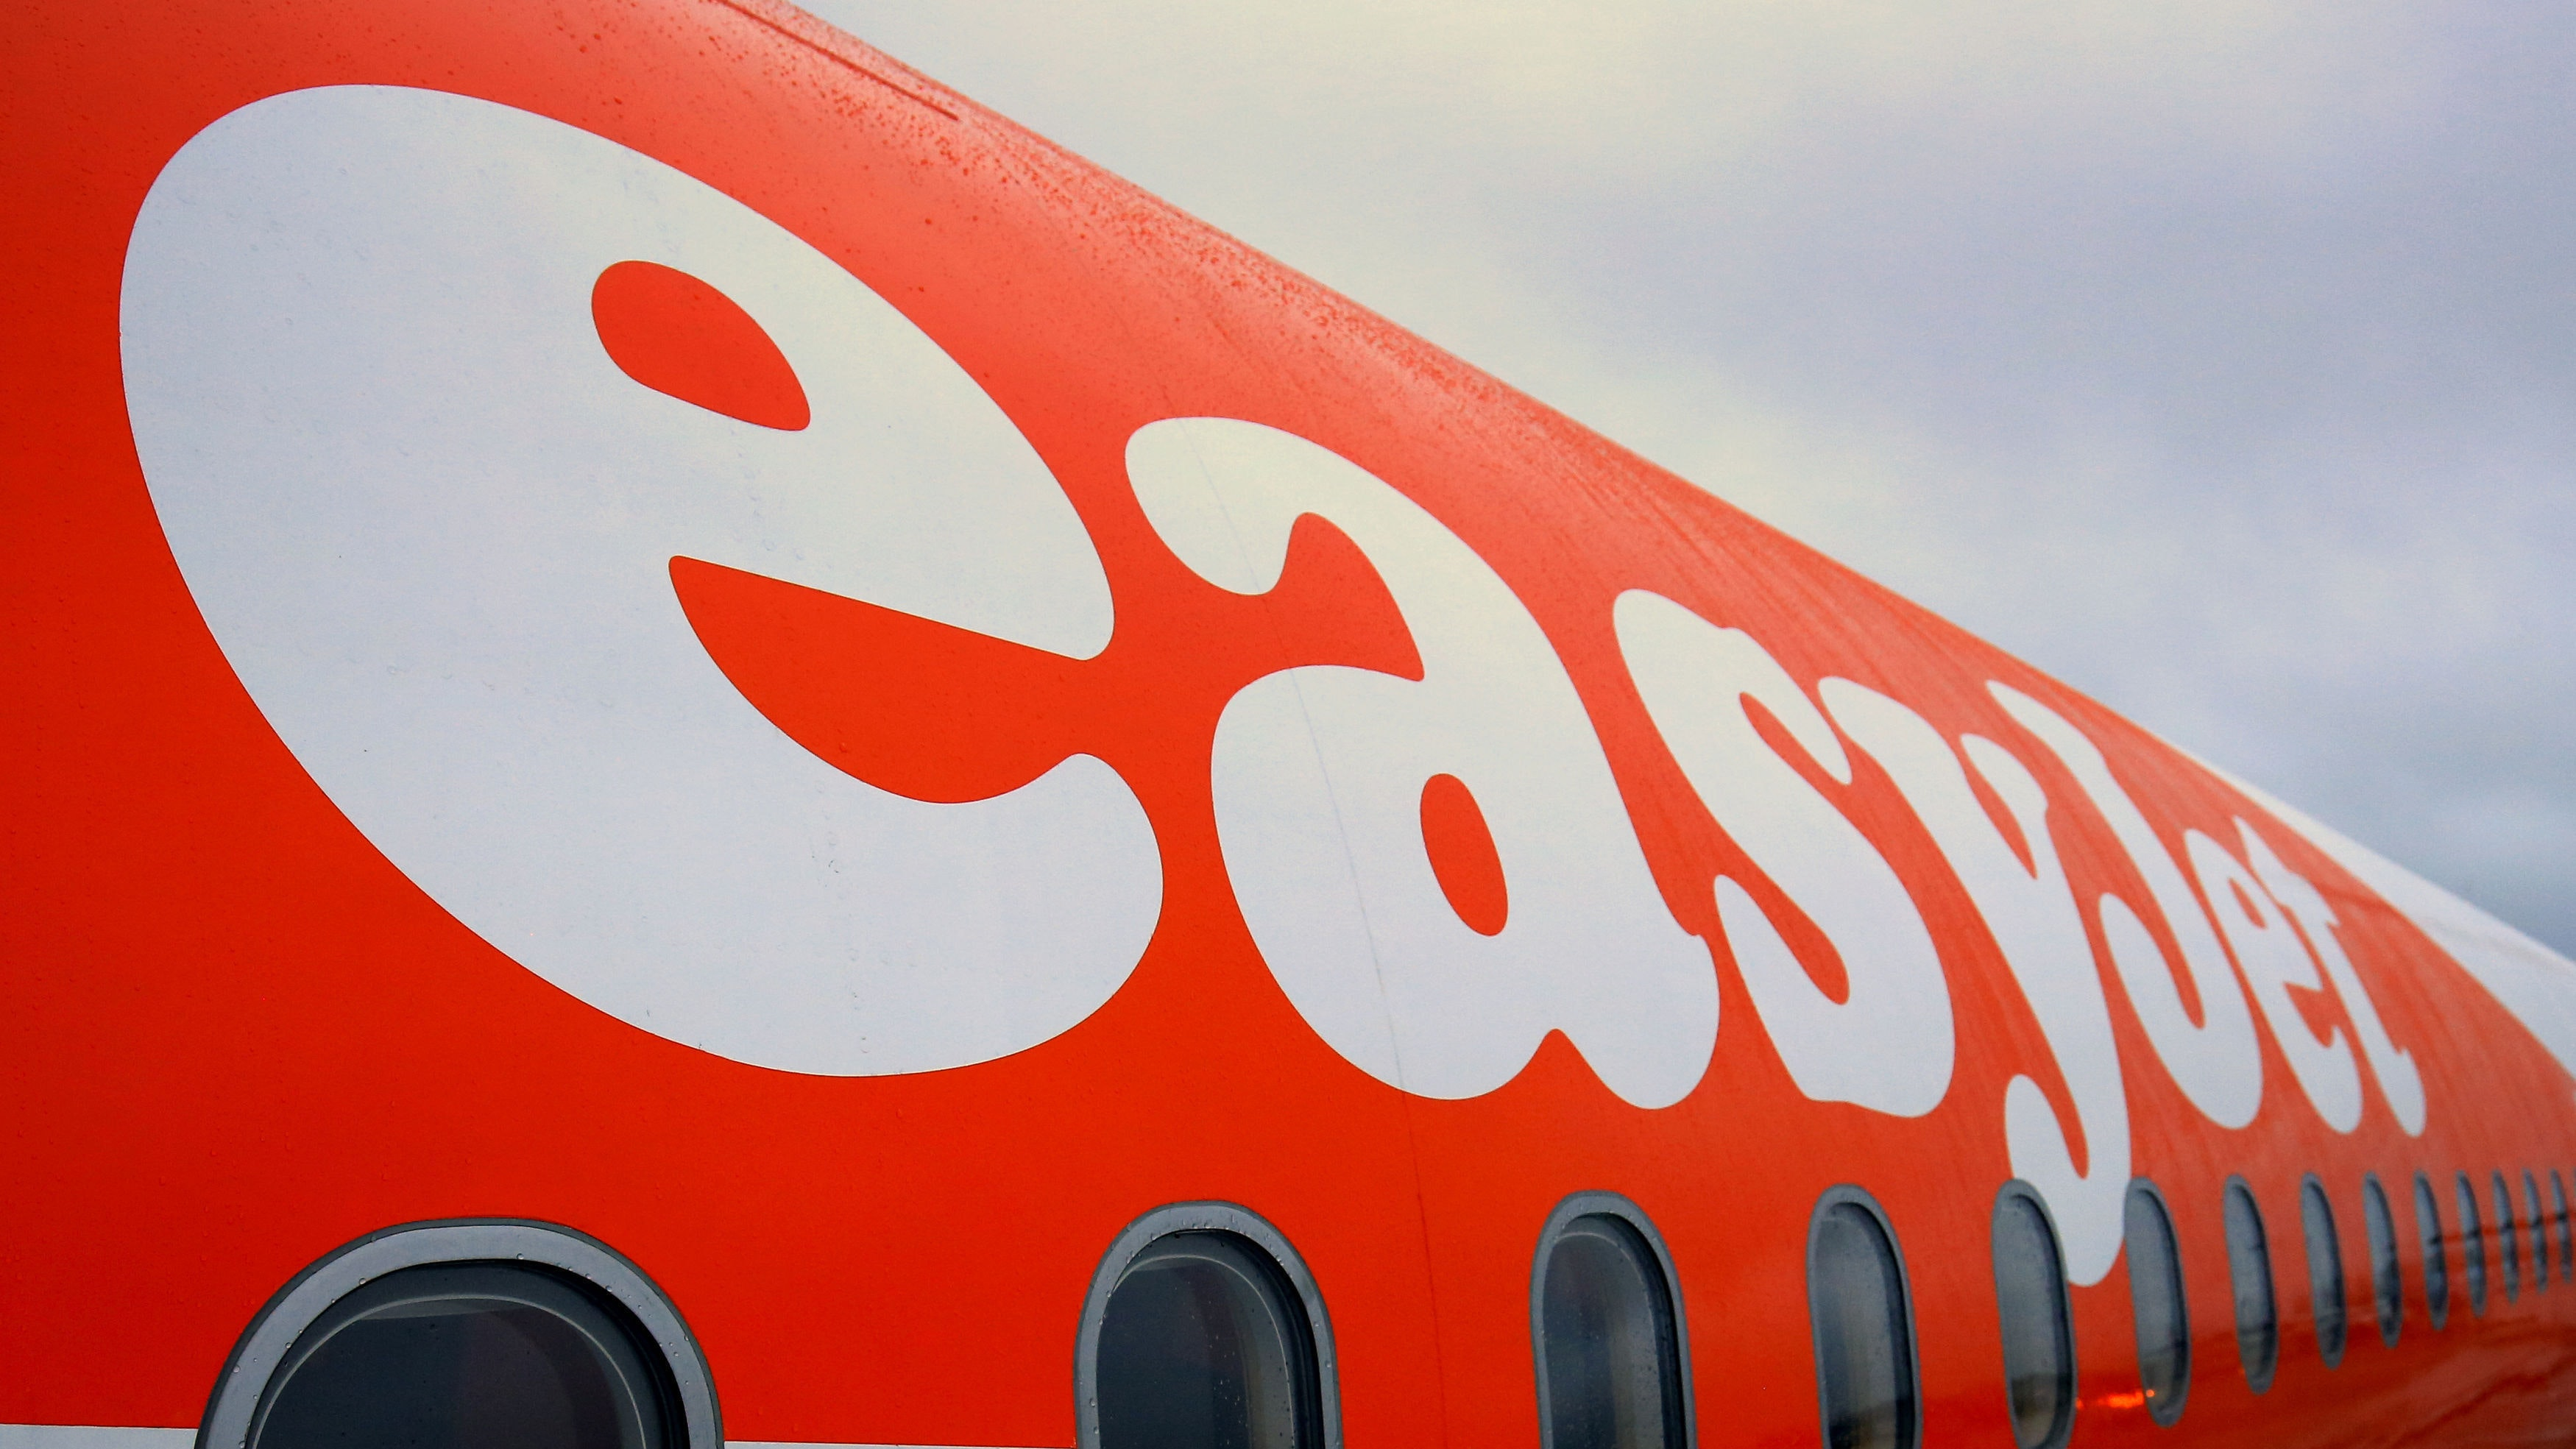 EasyJet shares soar to two-year high as rivals' woes boost business